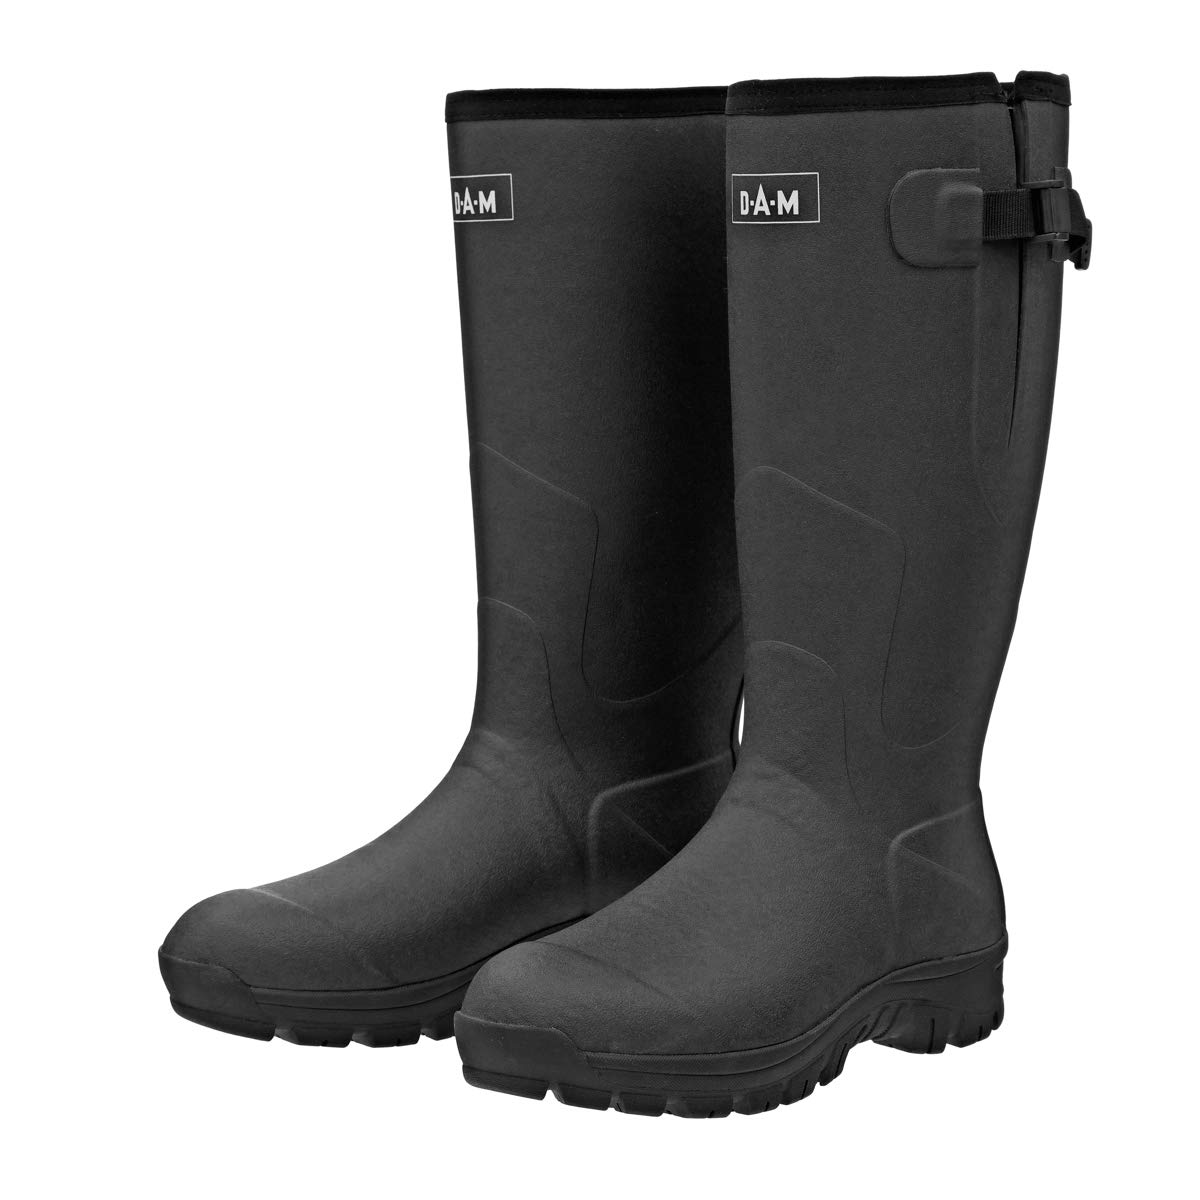 DAM (Breathable Hydroforce Gummistiefel (Breathable DAM / Atmungsaktiv) - cd1a1d